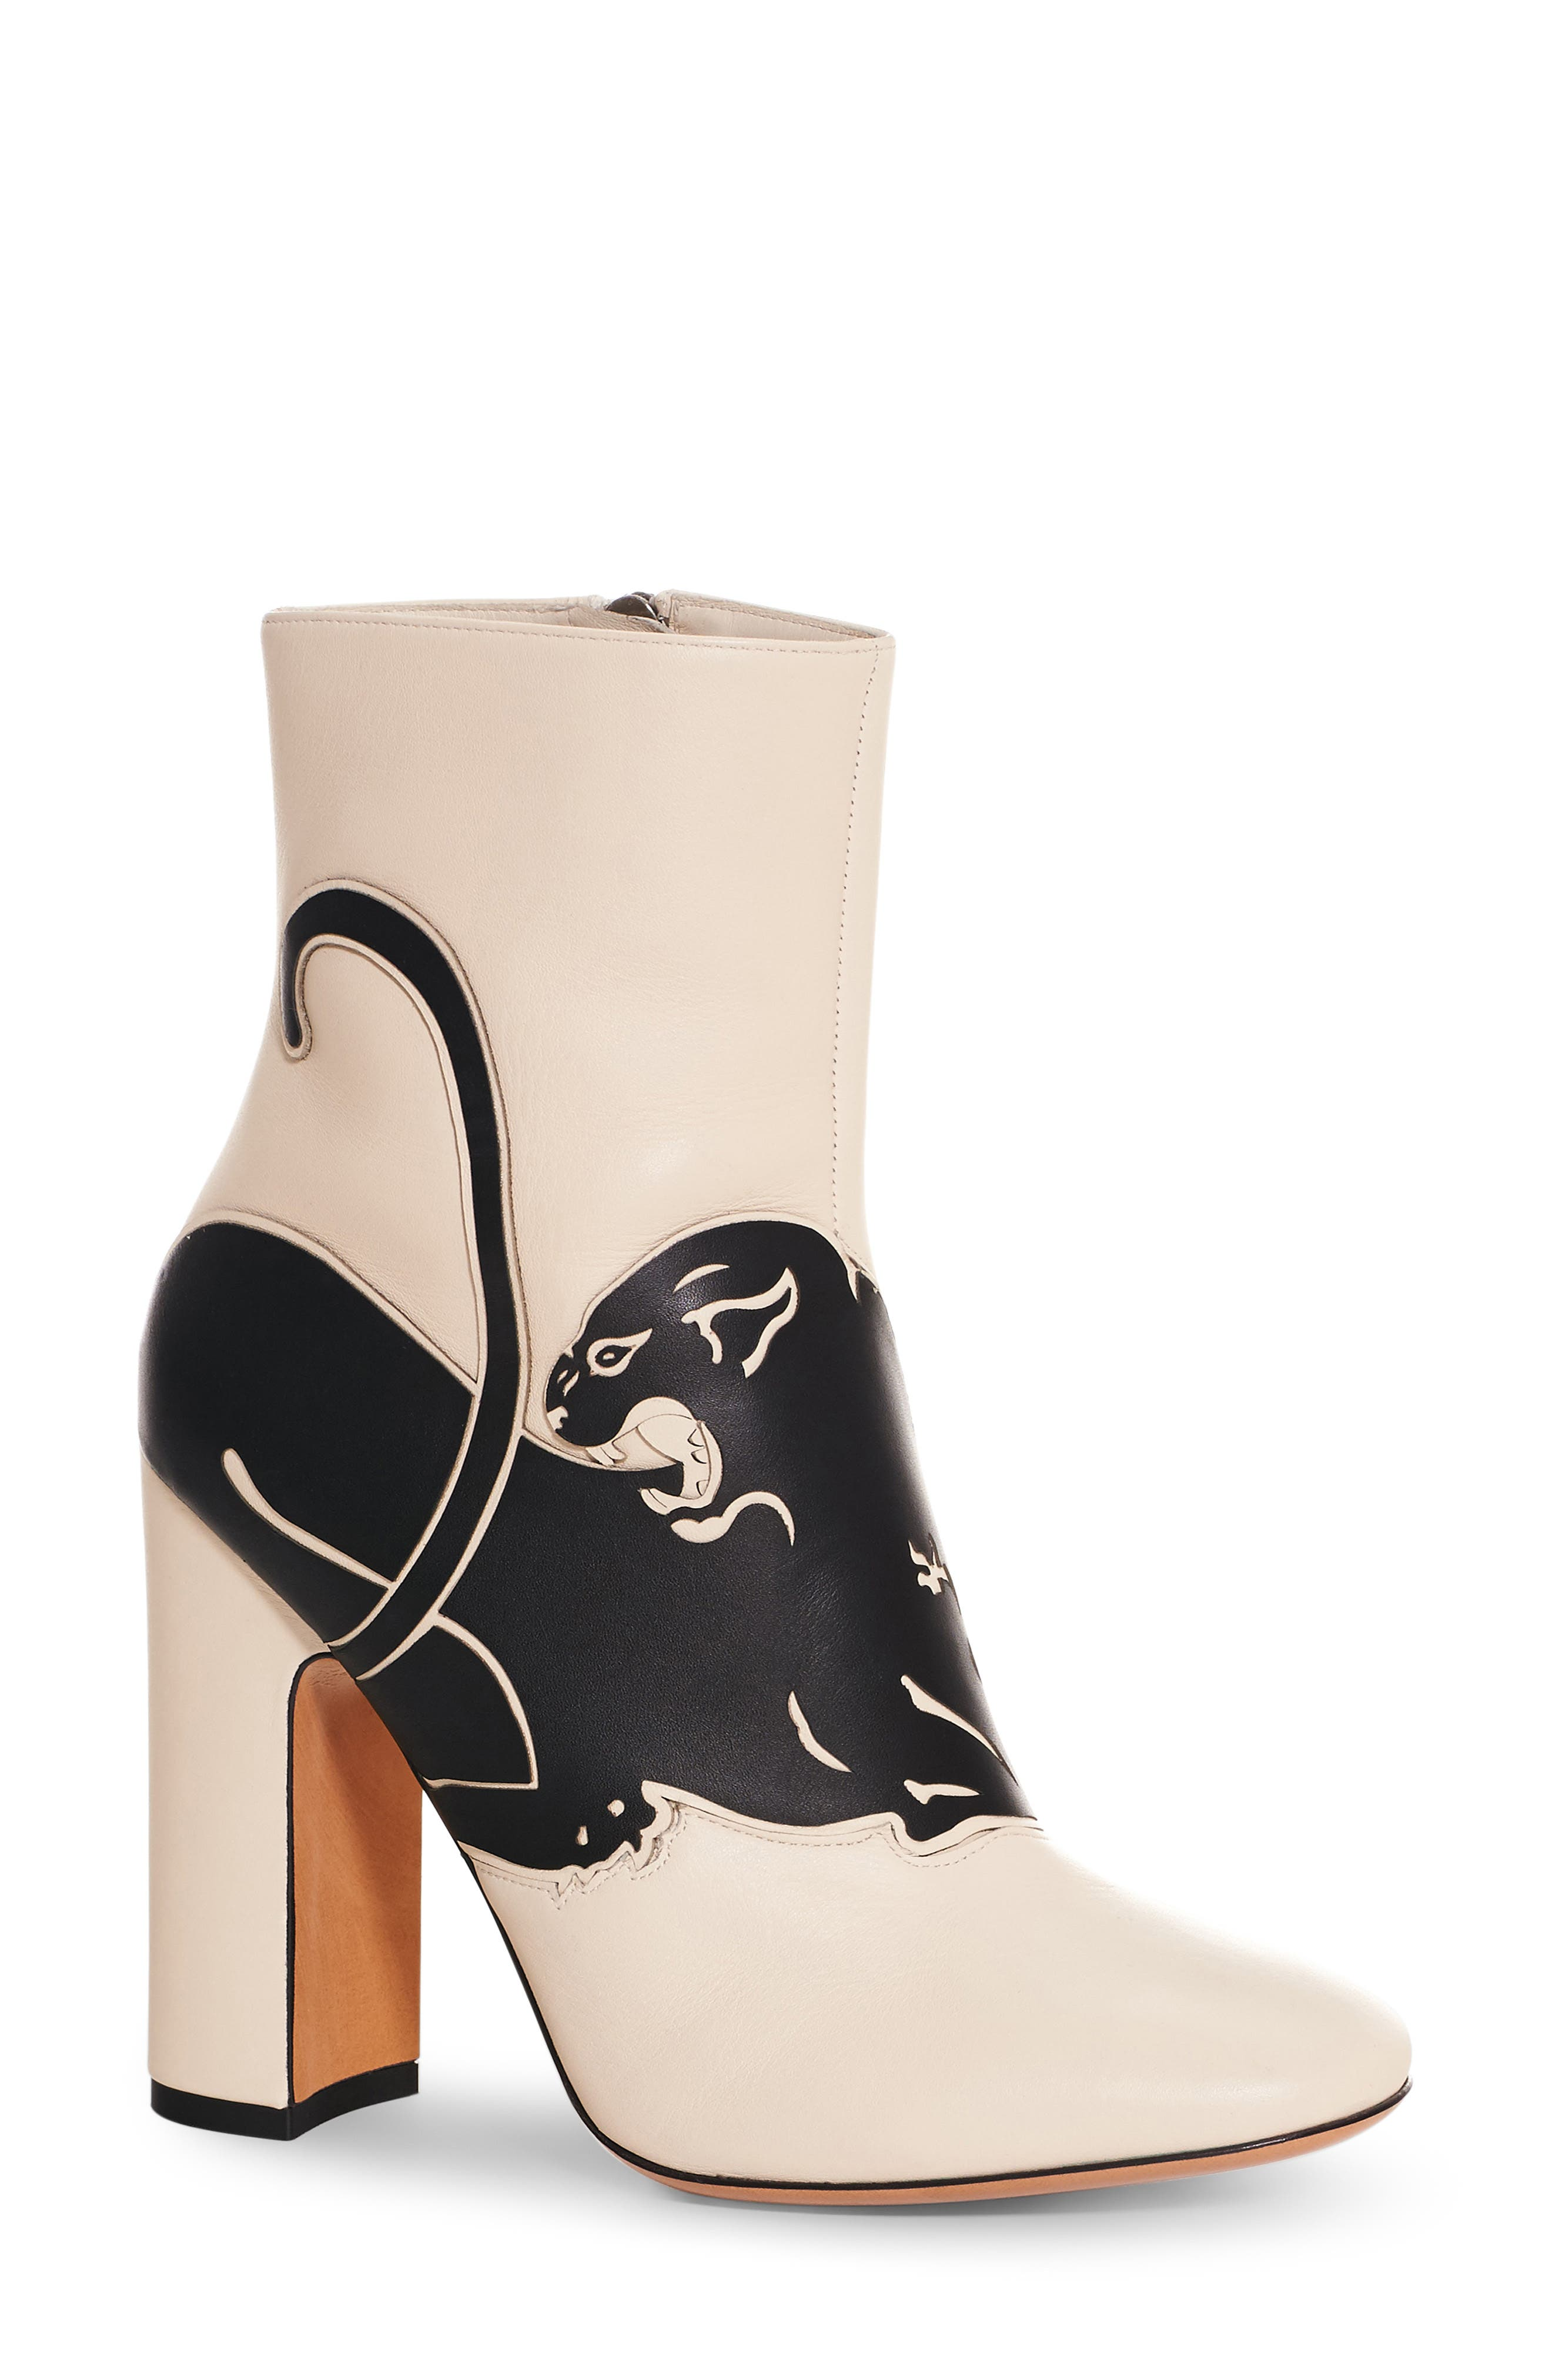 Panther Boot,                         Main,                         color, Ivory Leather